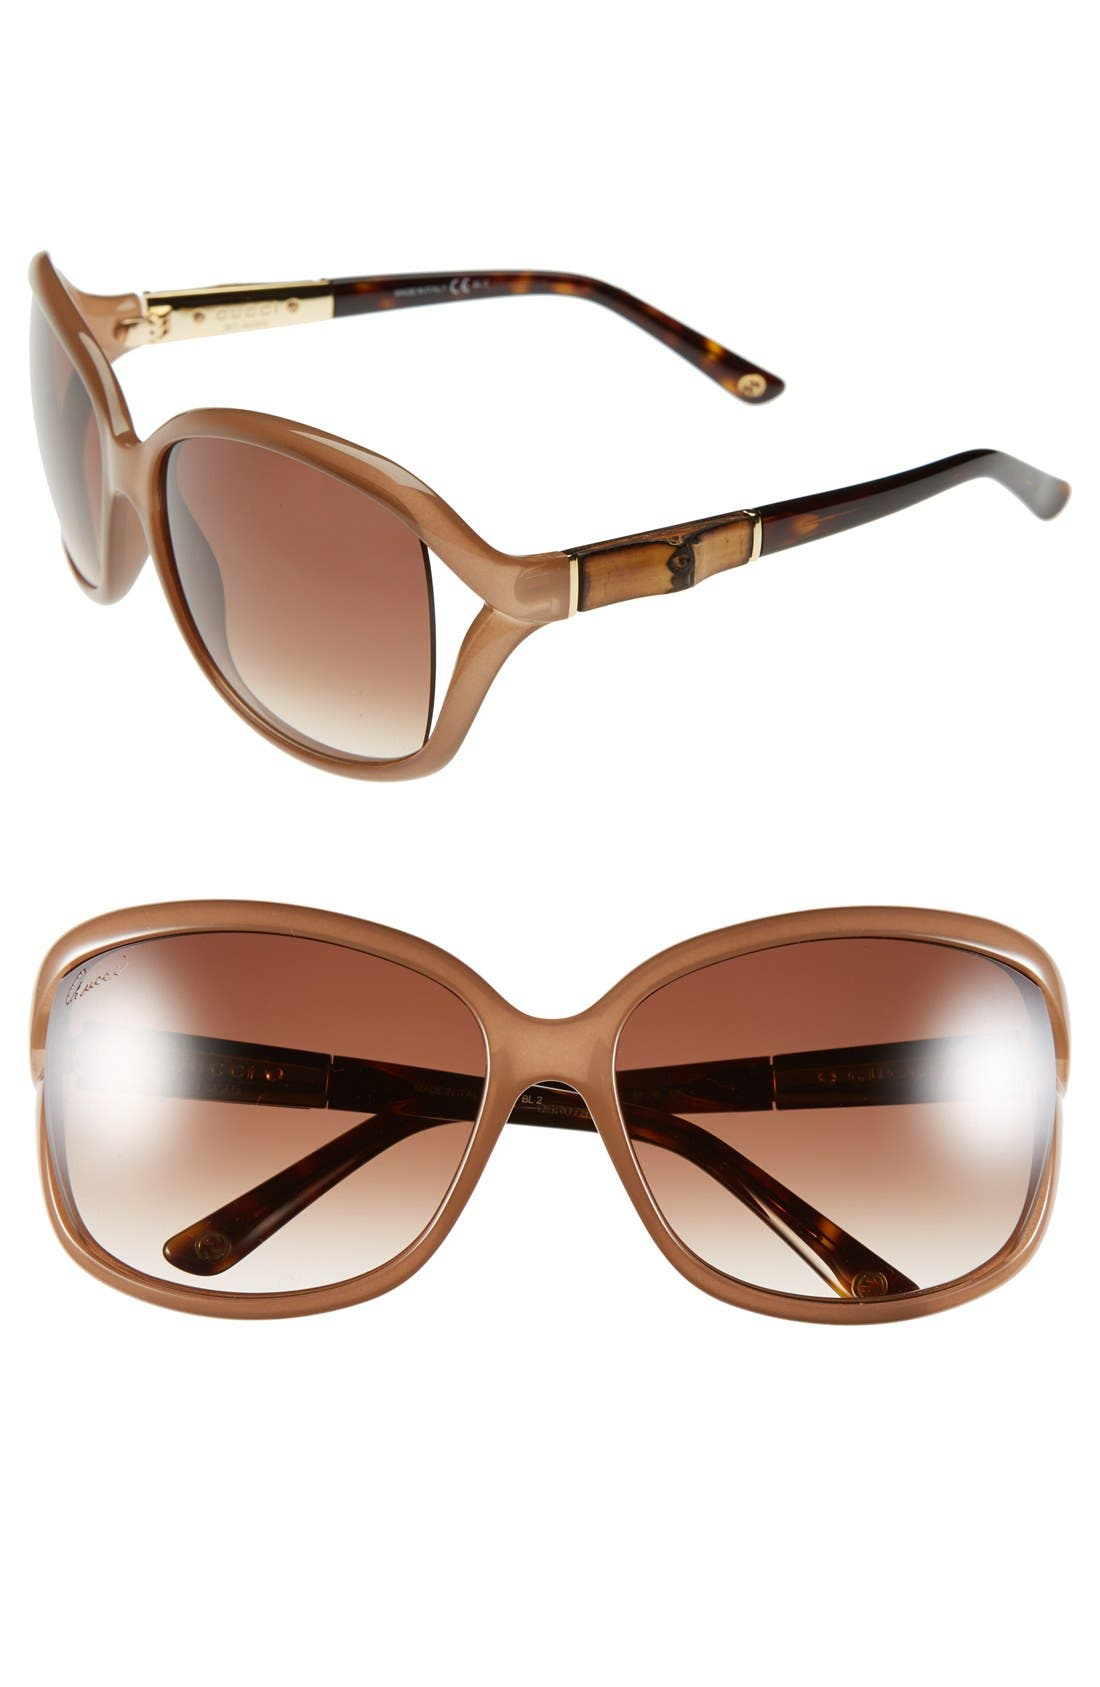 Main Image - Gucci 61mm Oversized Bamboo Temple Sunglasses